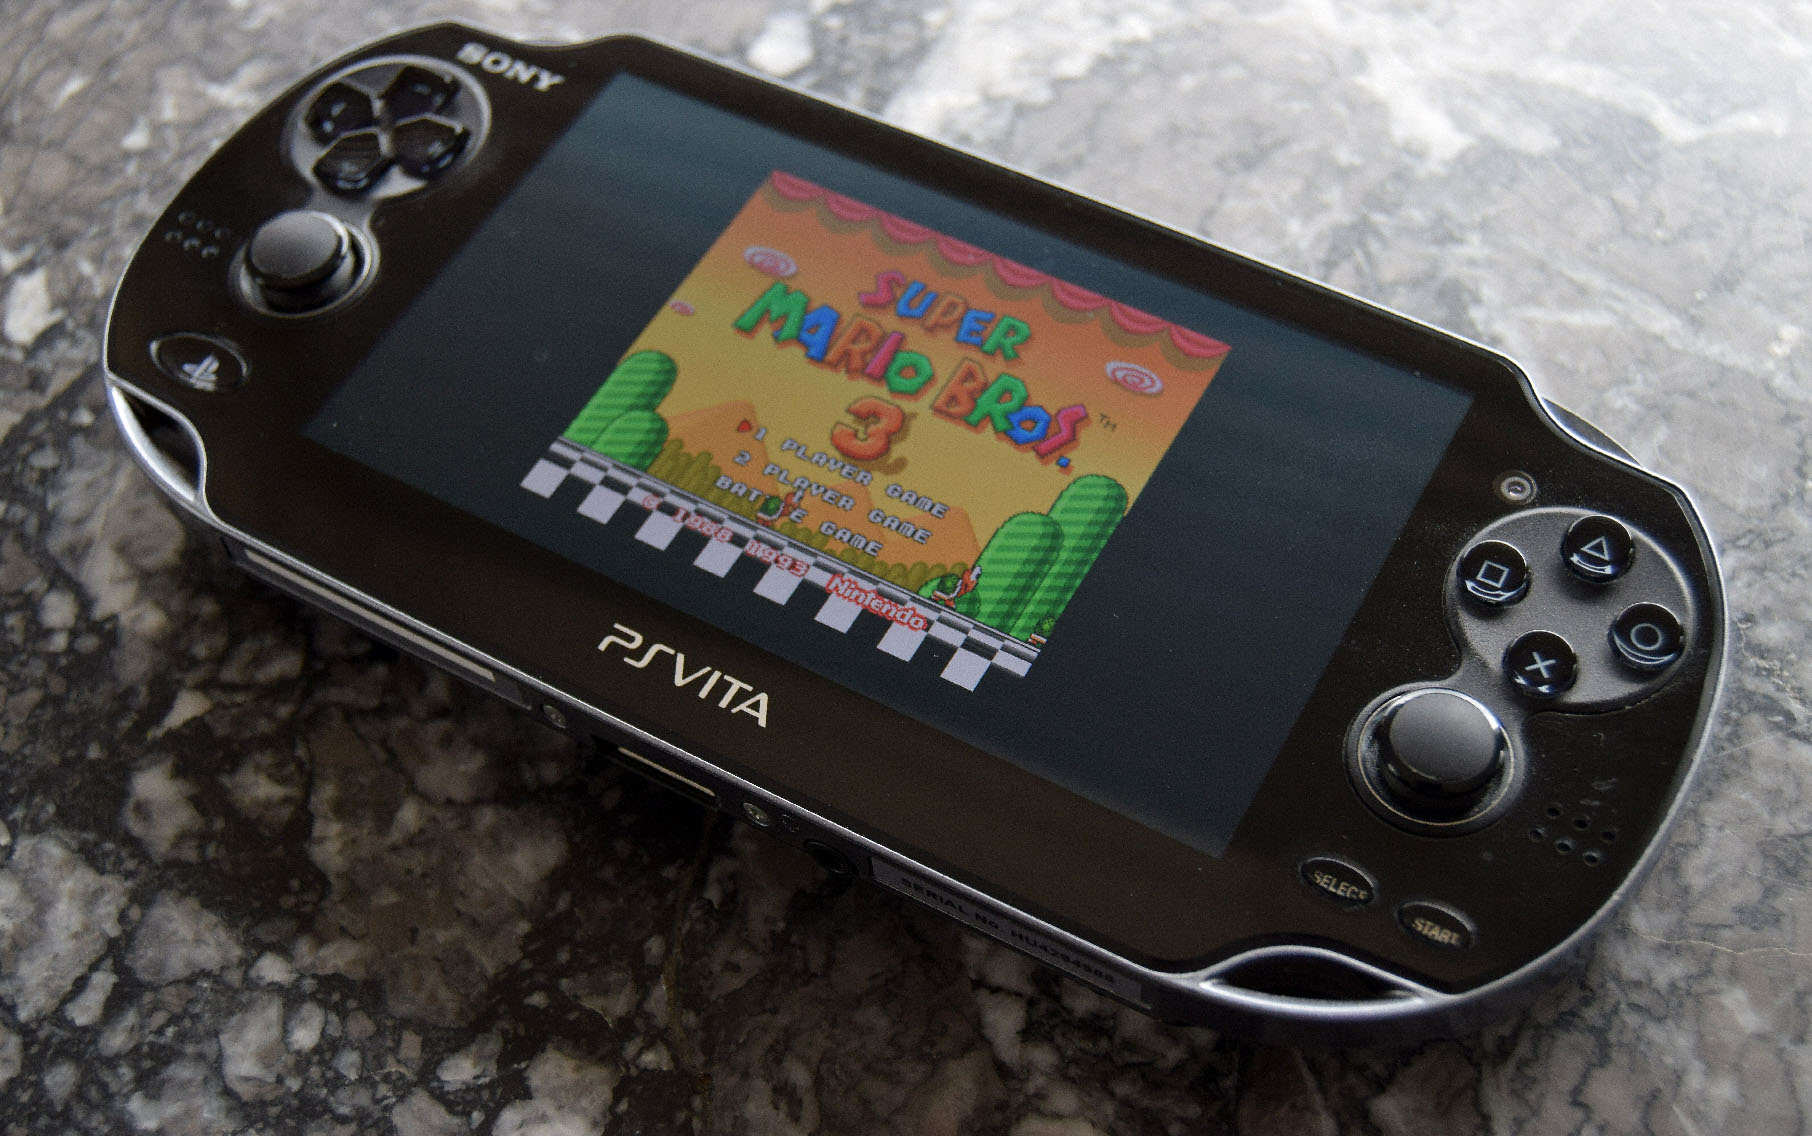 VITA1.jpg PS Vita Hacked To Become Portable Emulator